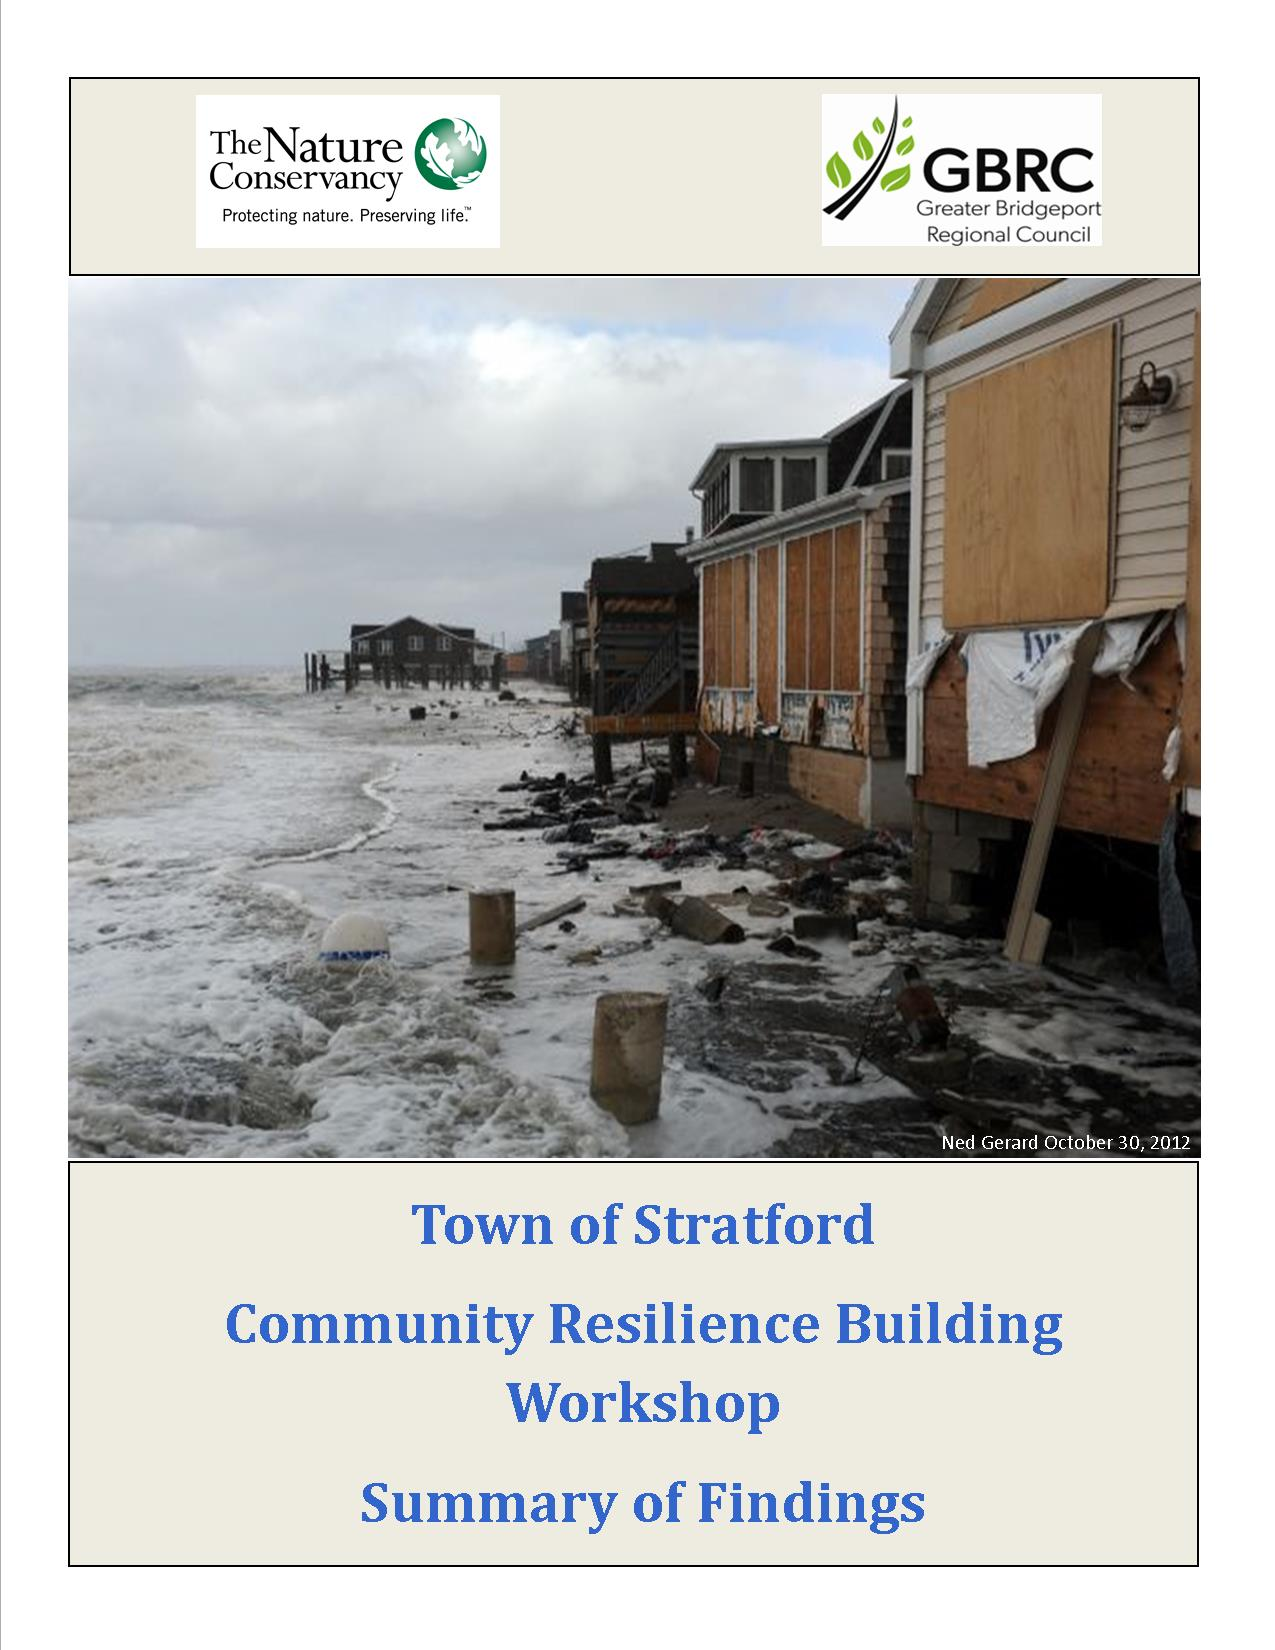 Community Resilience Building Workshop